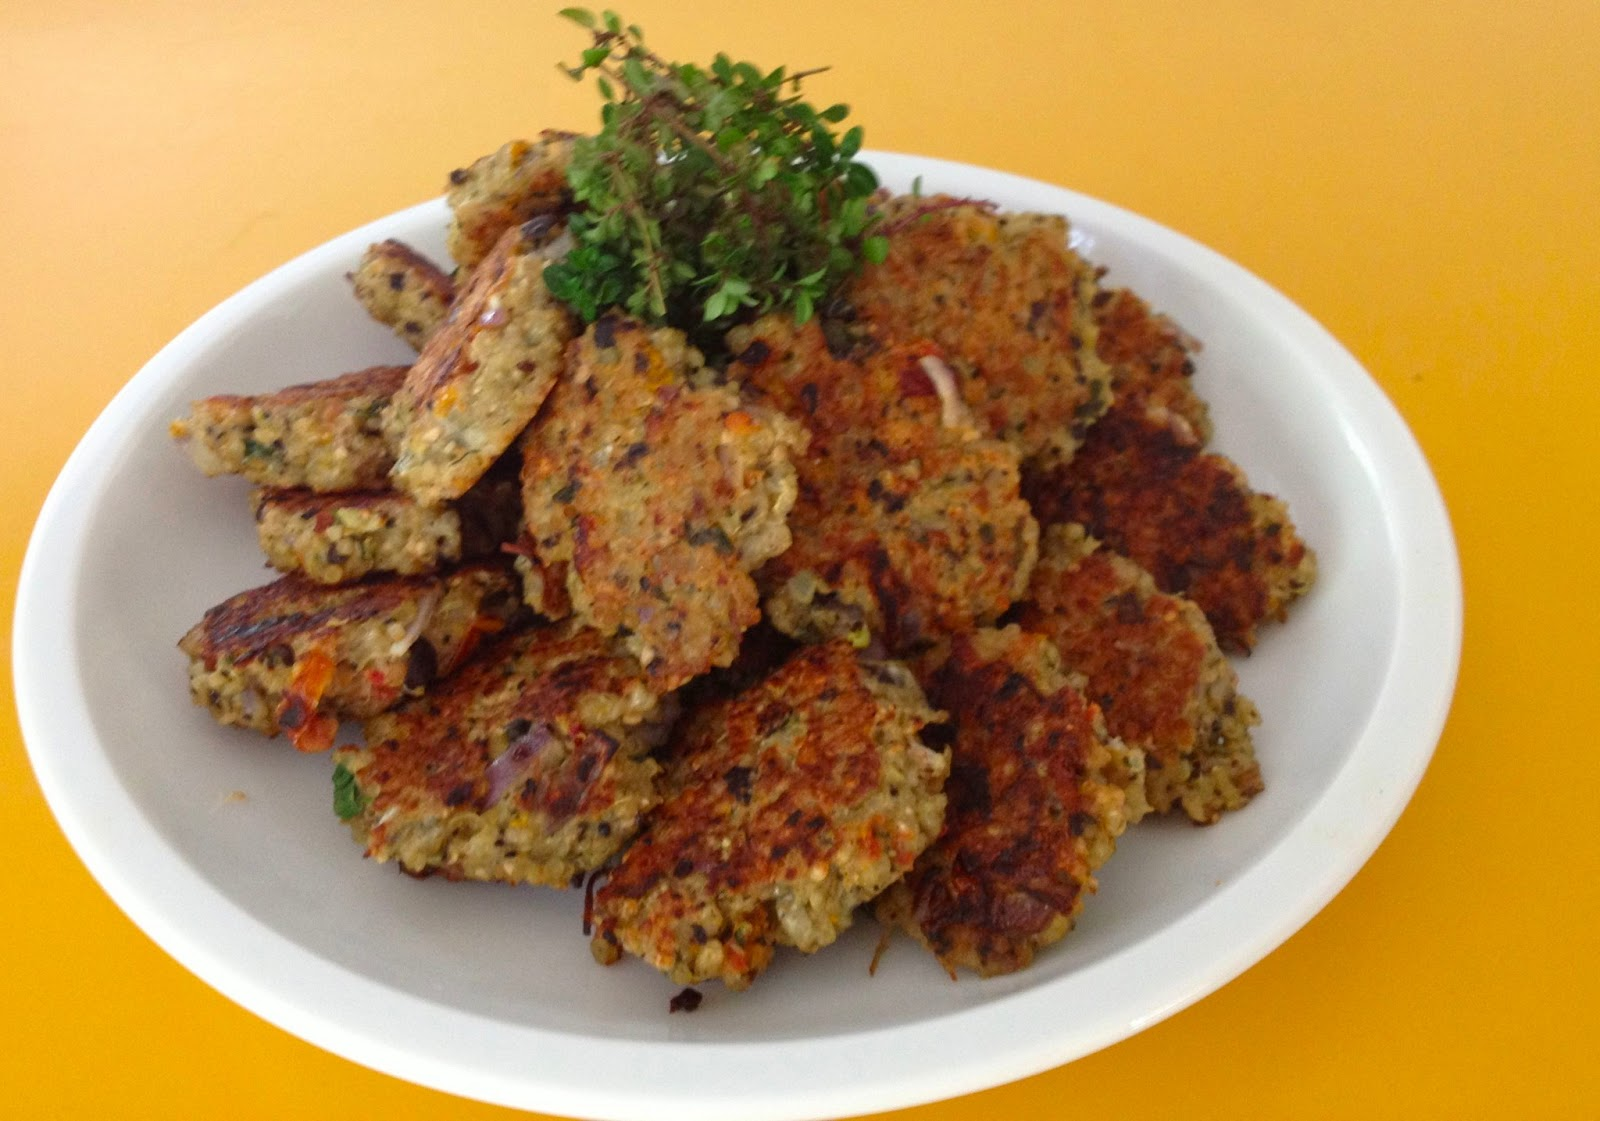 Quinoa patties  Quinoa patties are yummy, nutritious and good for any occasions.